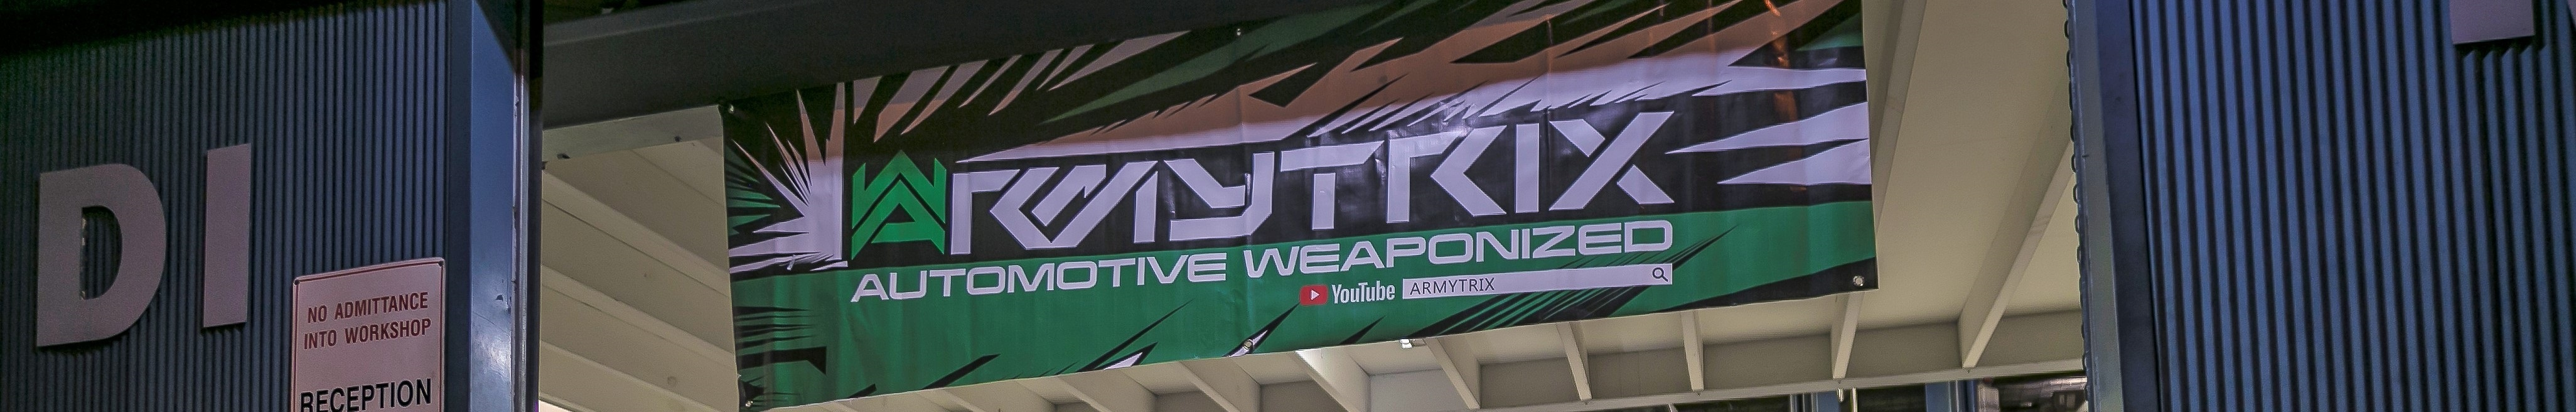 Armytrix_F1_Exhaust banner